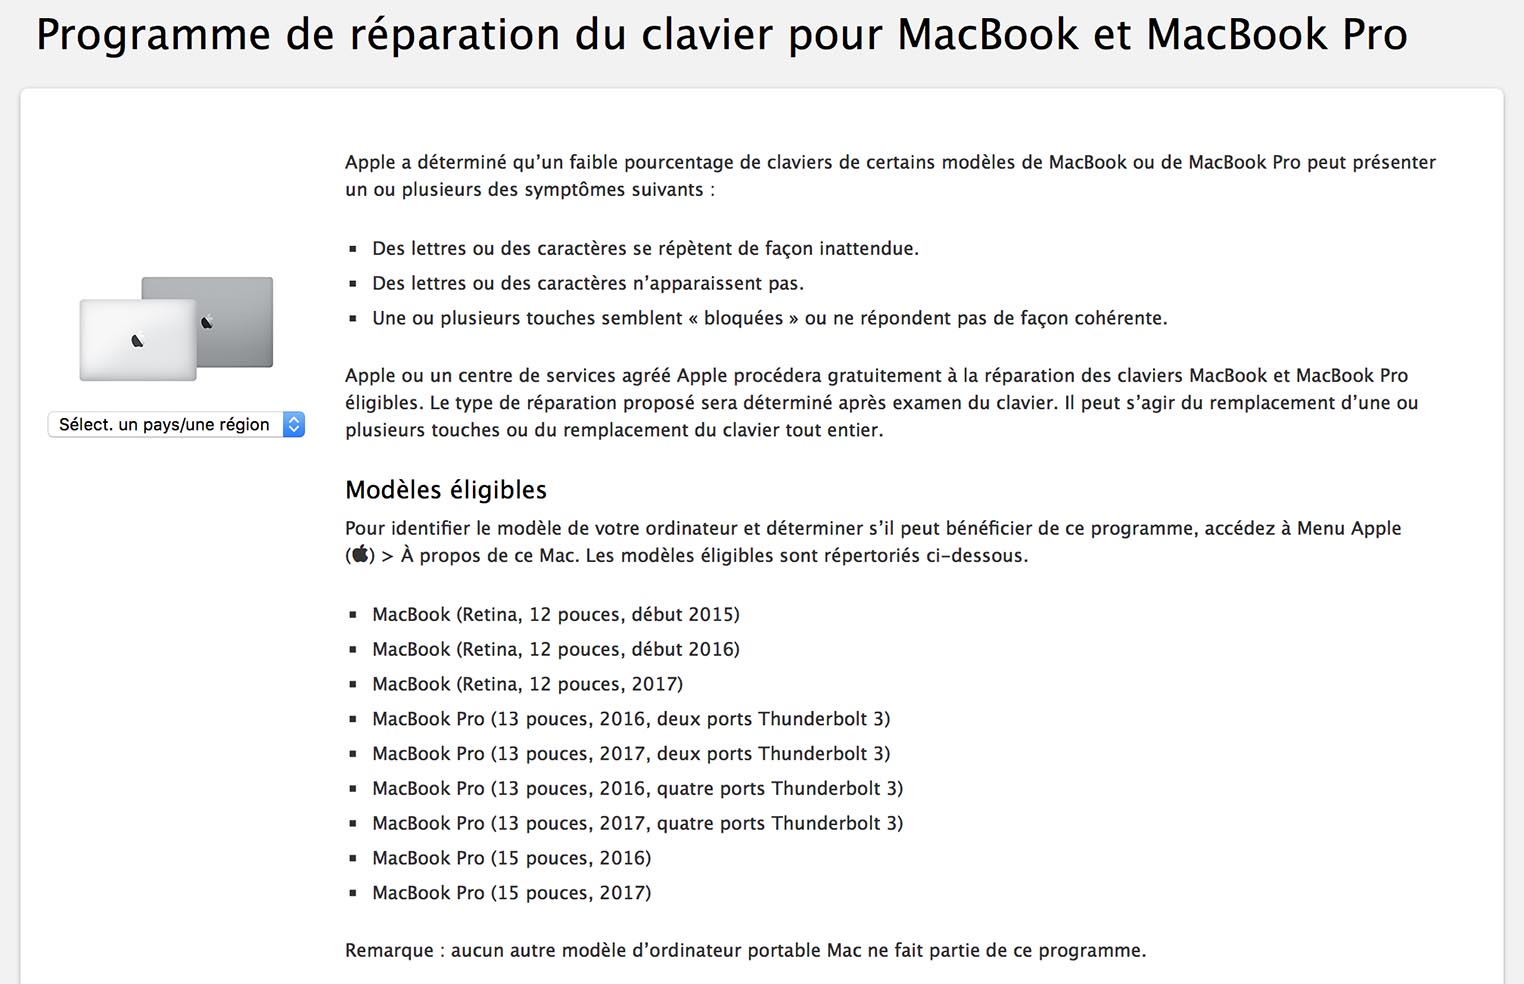 Programme réparation clavier papillon MacBook